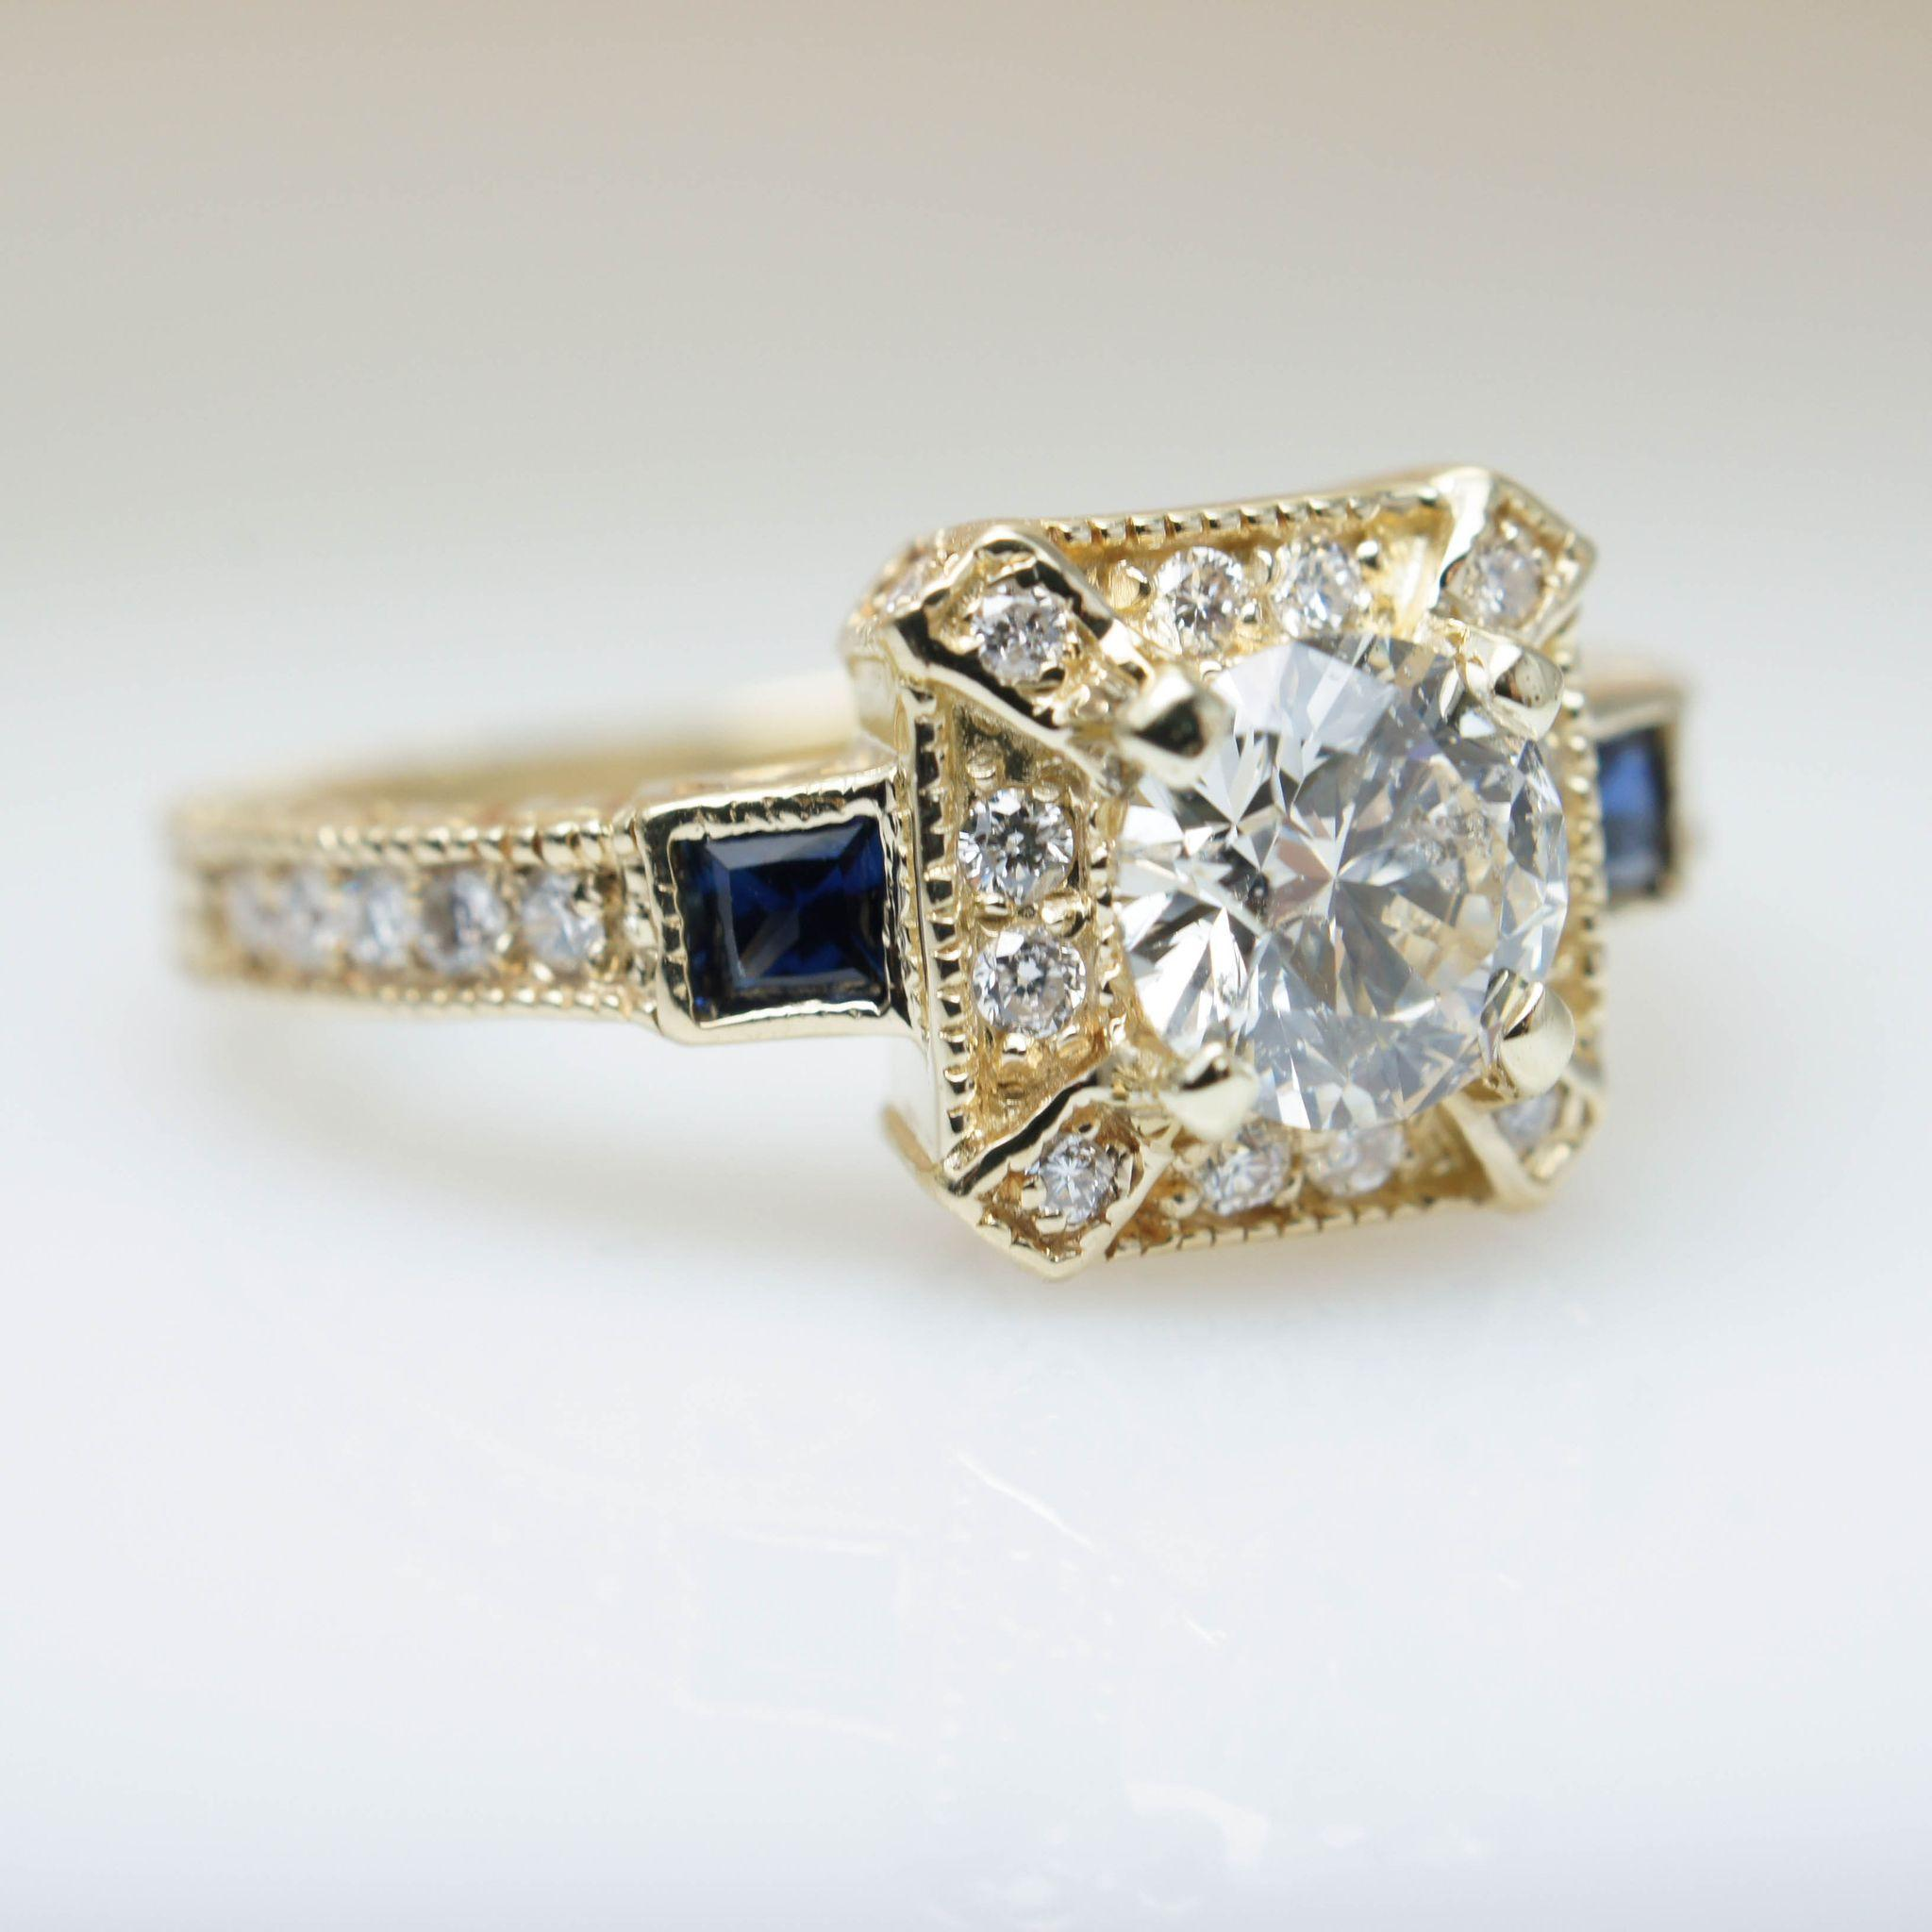 Intricate Art Deco Style 1 16ctw Diamond Engagement Ring in 14k Yellow from j